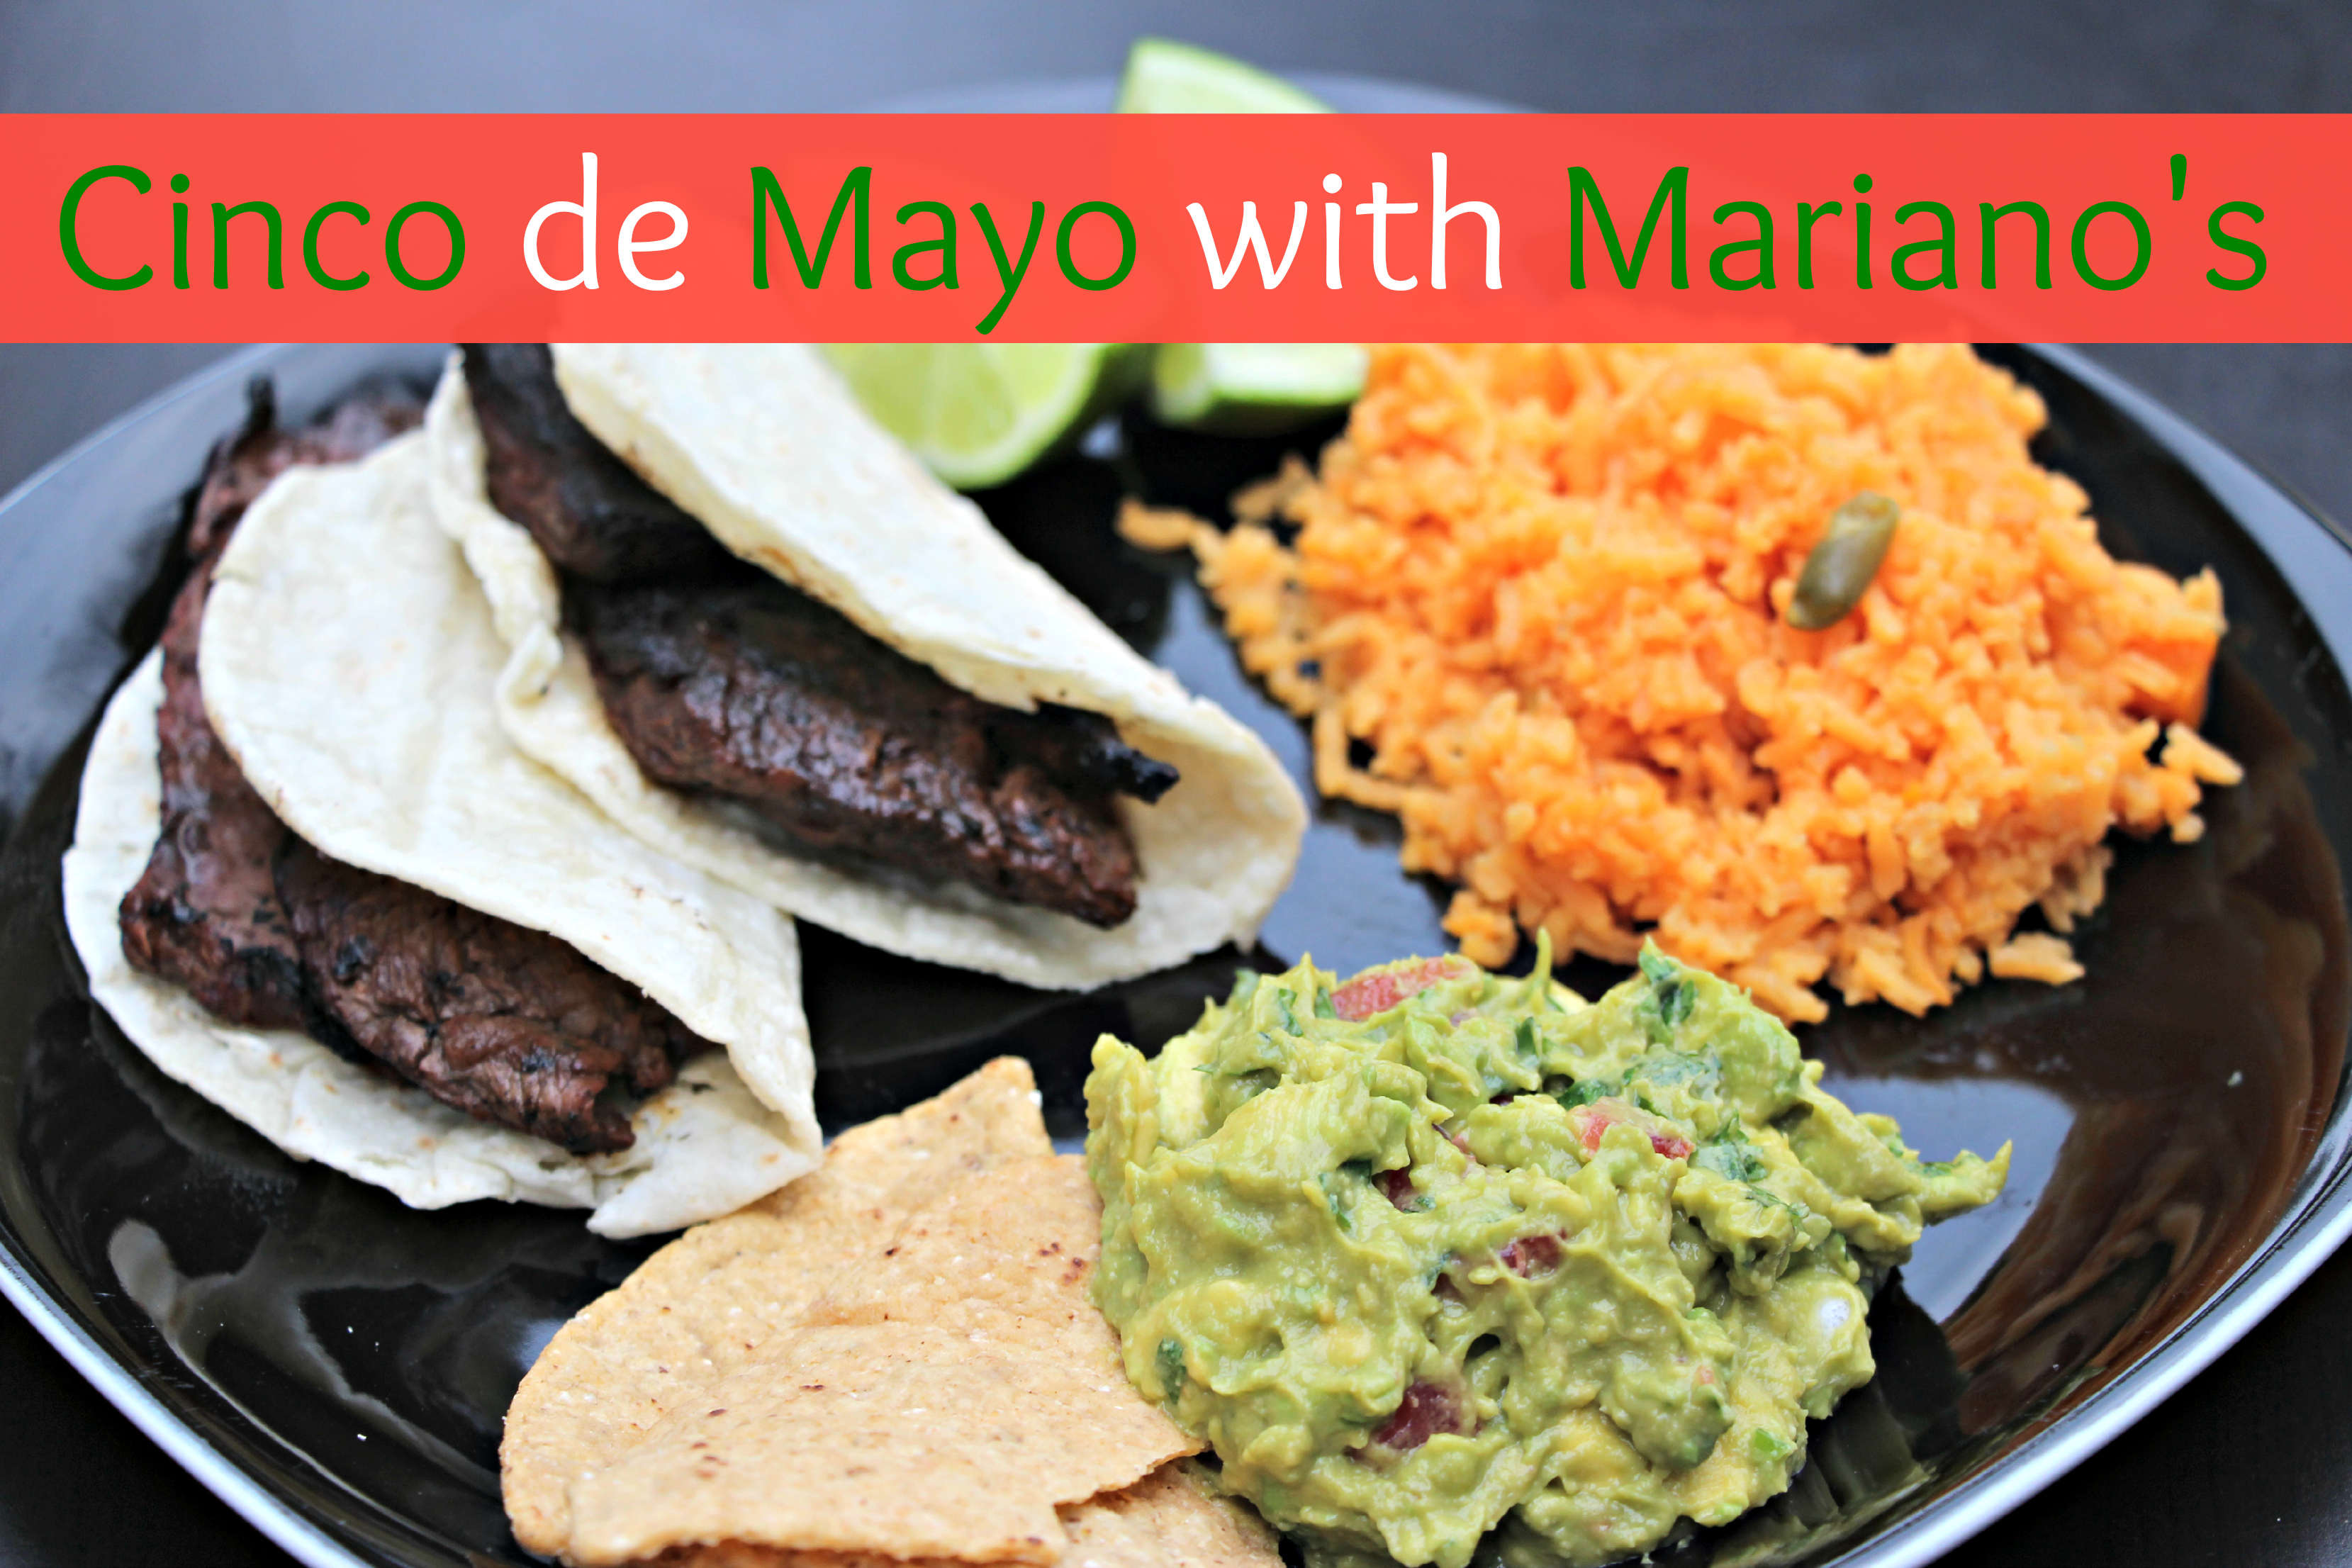 Cinco de Mayo Meal with Mariano's